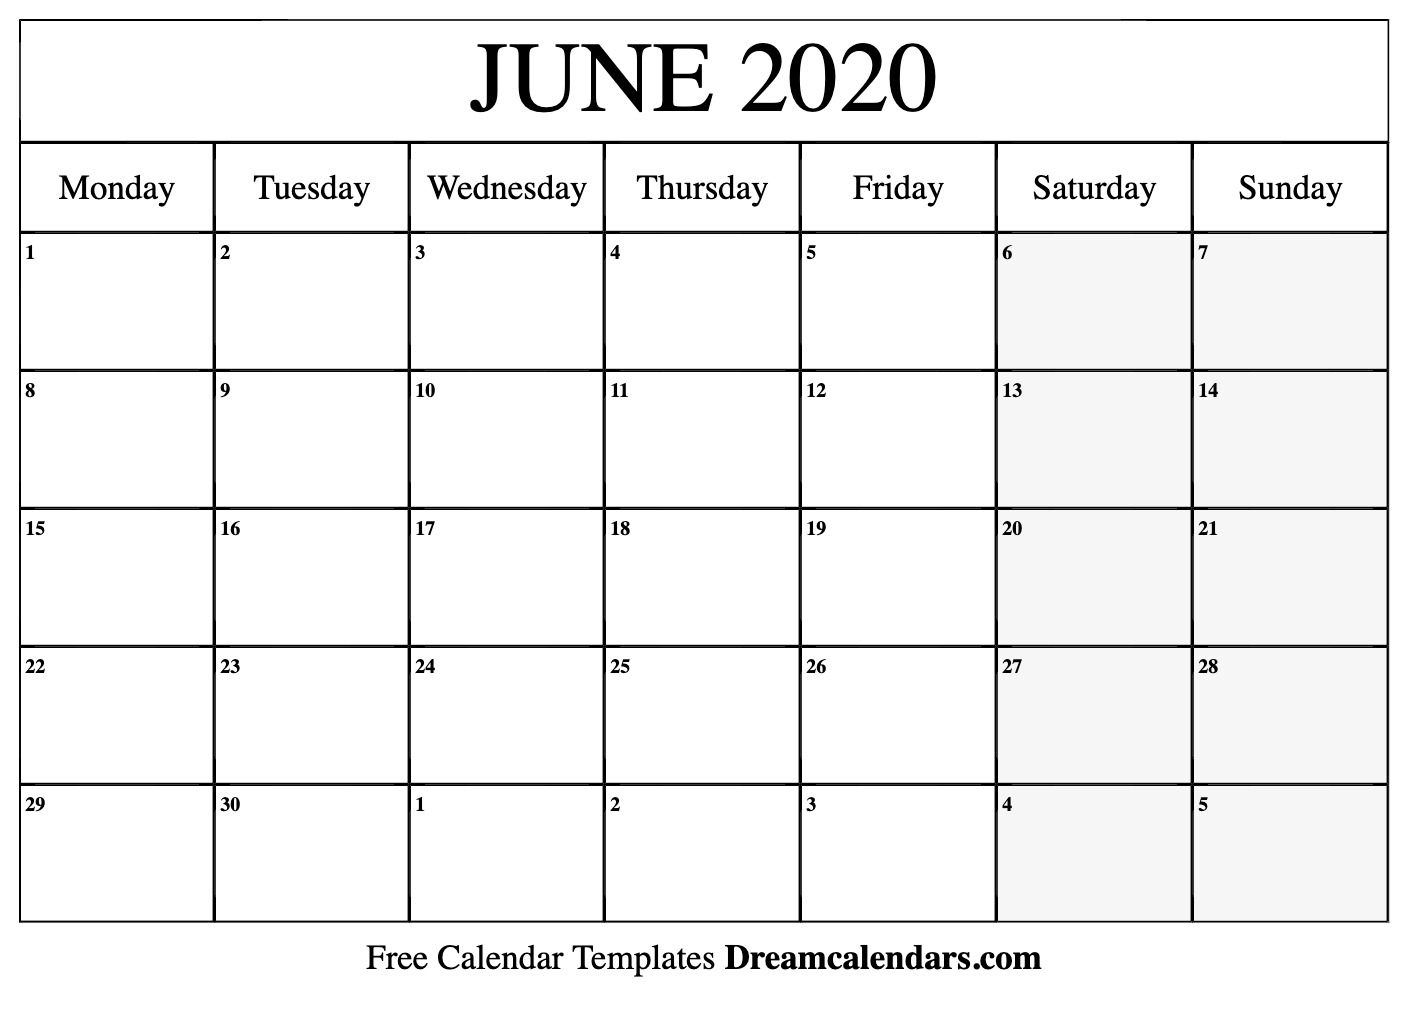 June 2020 Calendar Word  Yatay.horizonconsulting.co for Printable June 2020 Calendar